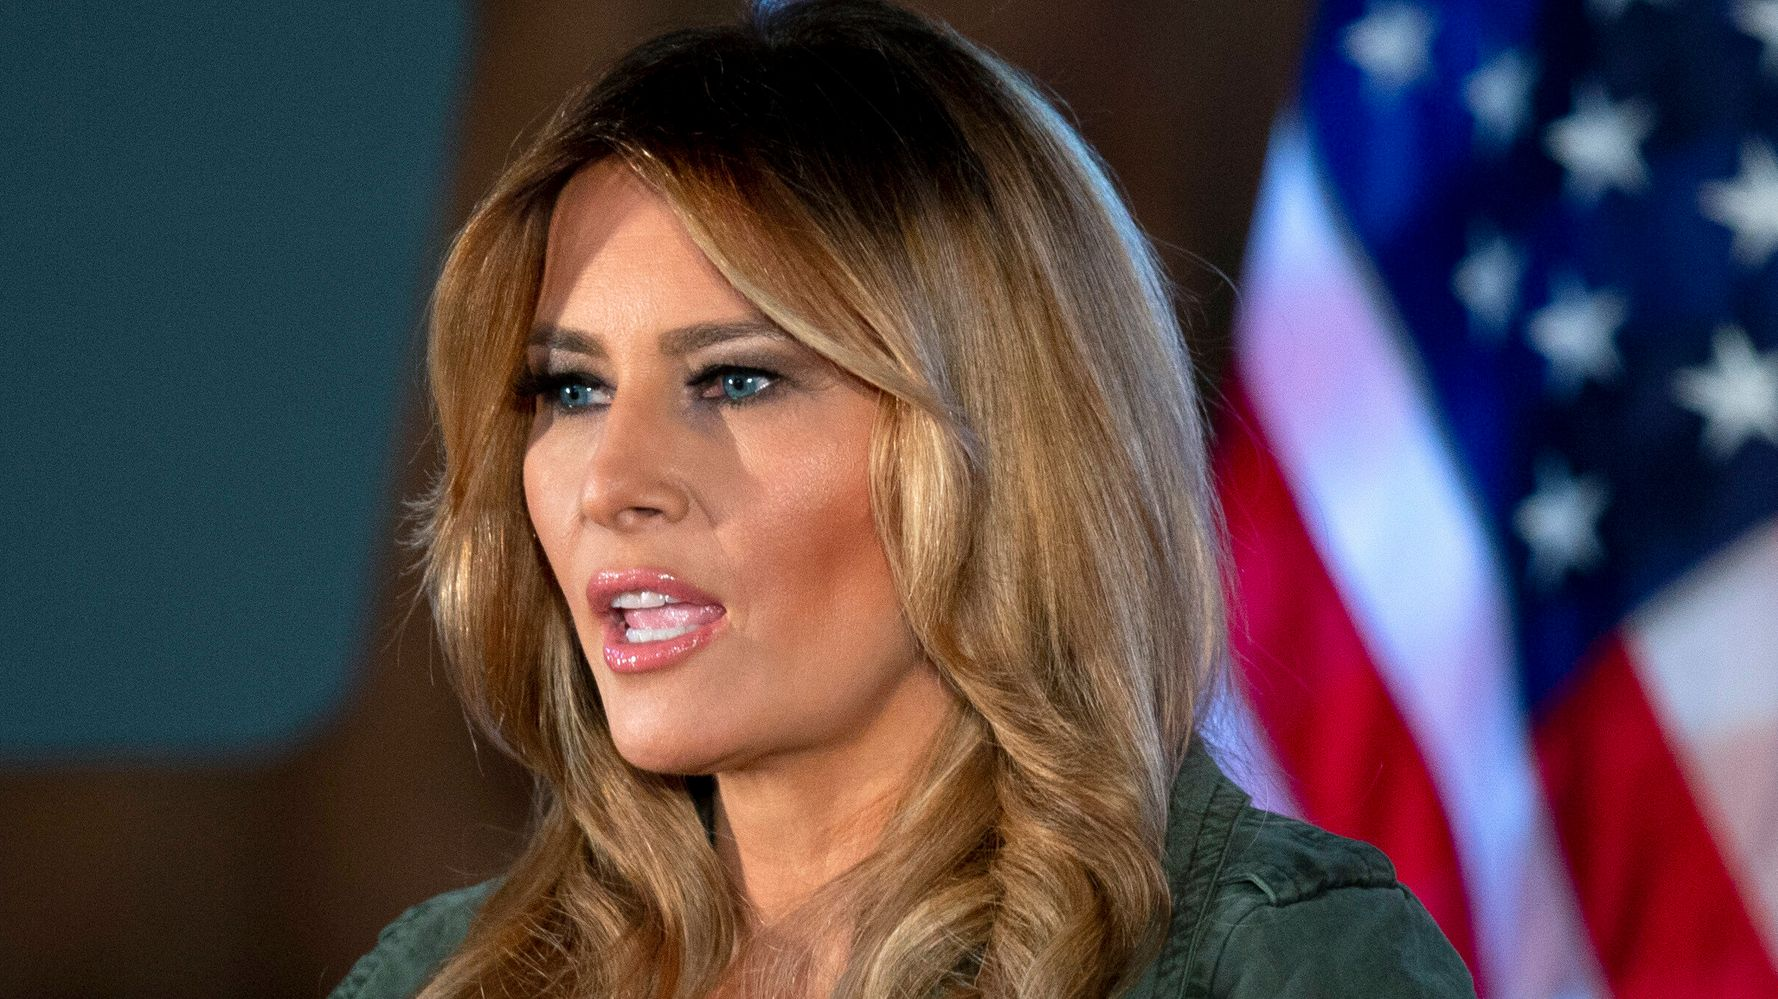 People Say Melania Trump's Speech Against 'Hate' Should Come With A Laugh Track